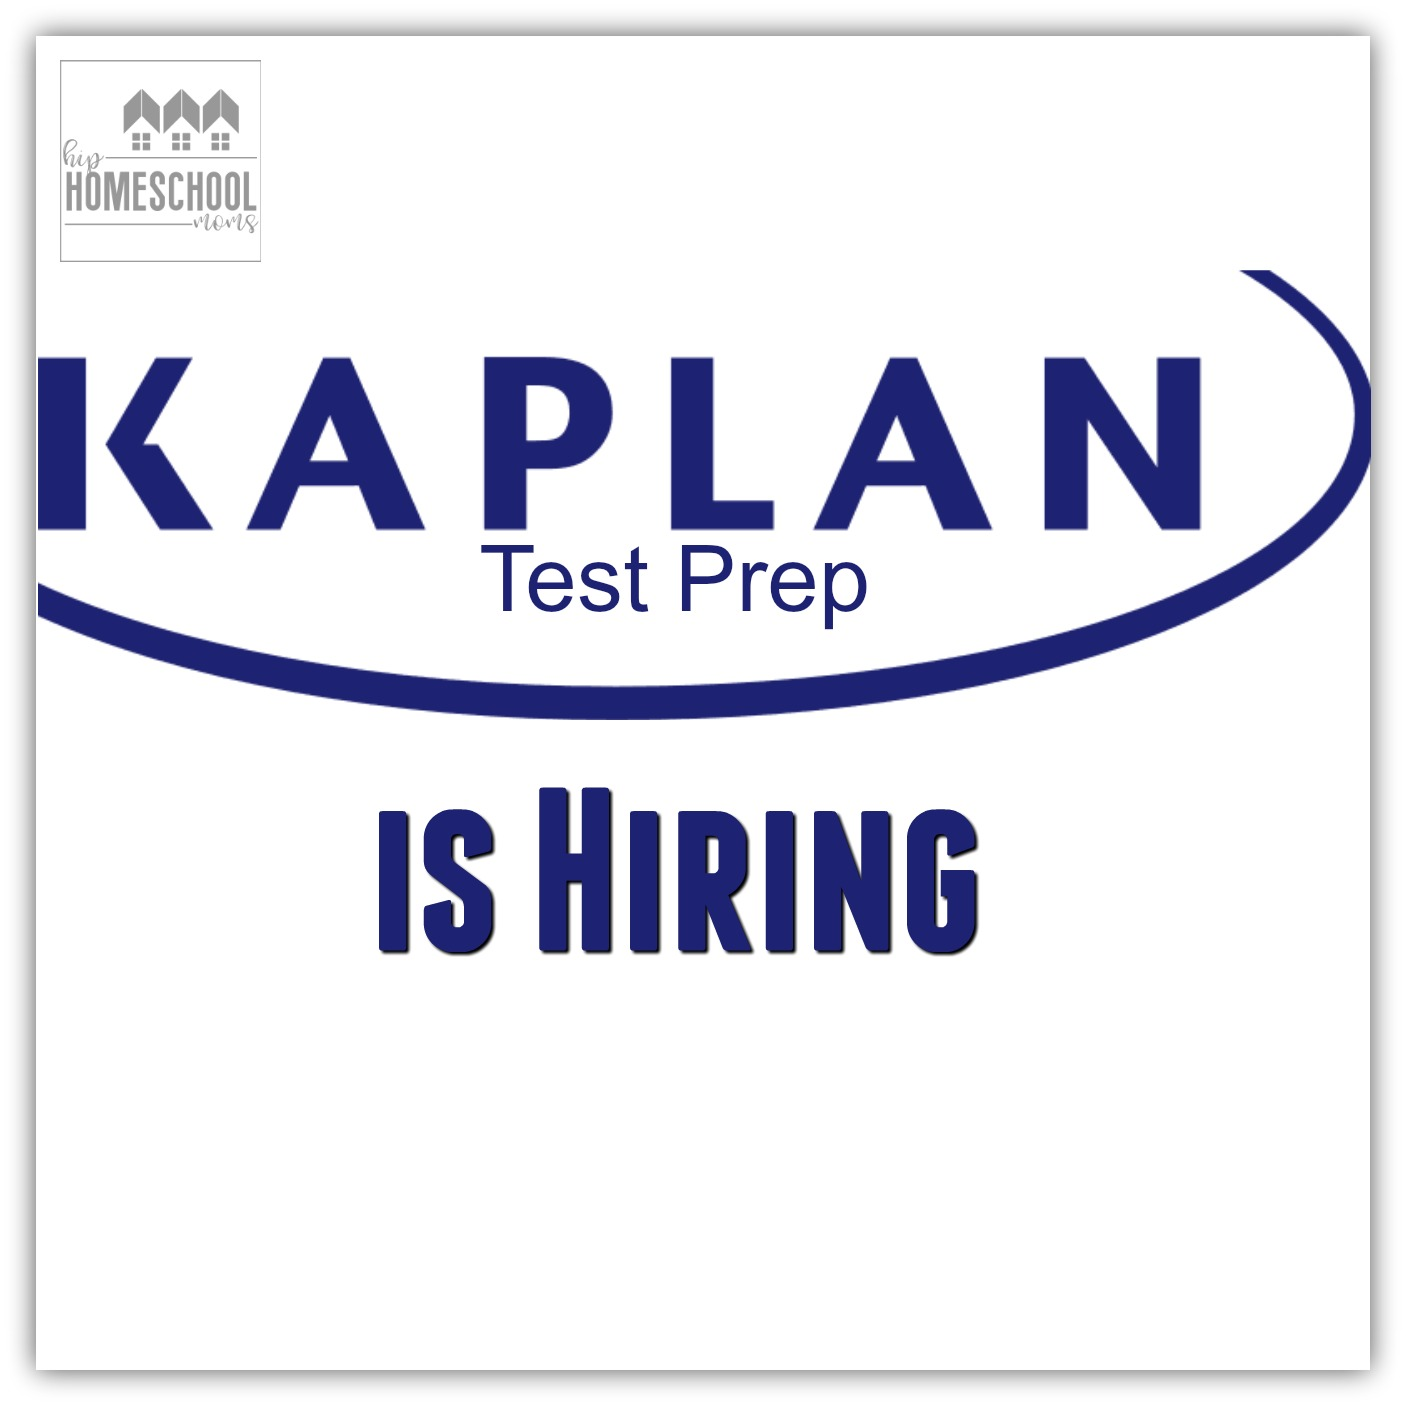 Kaplan test prep is hiring hip homeschool moms kaplan also provides private tutoring and graduate admissions consulting services within kaplan test prep are metis and dev bootcamp which operate new kristyandbryce Choice Image